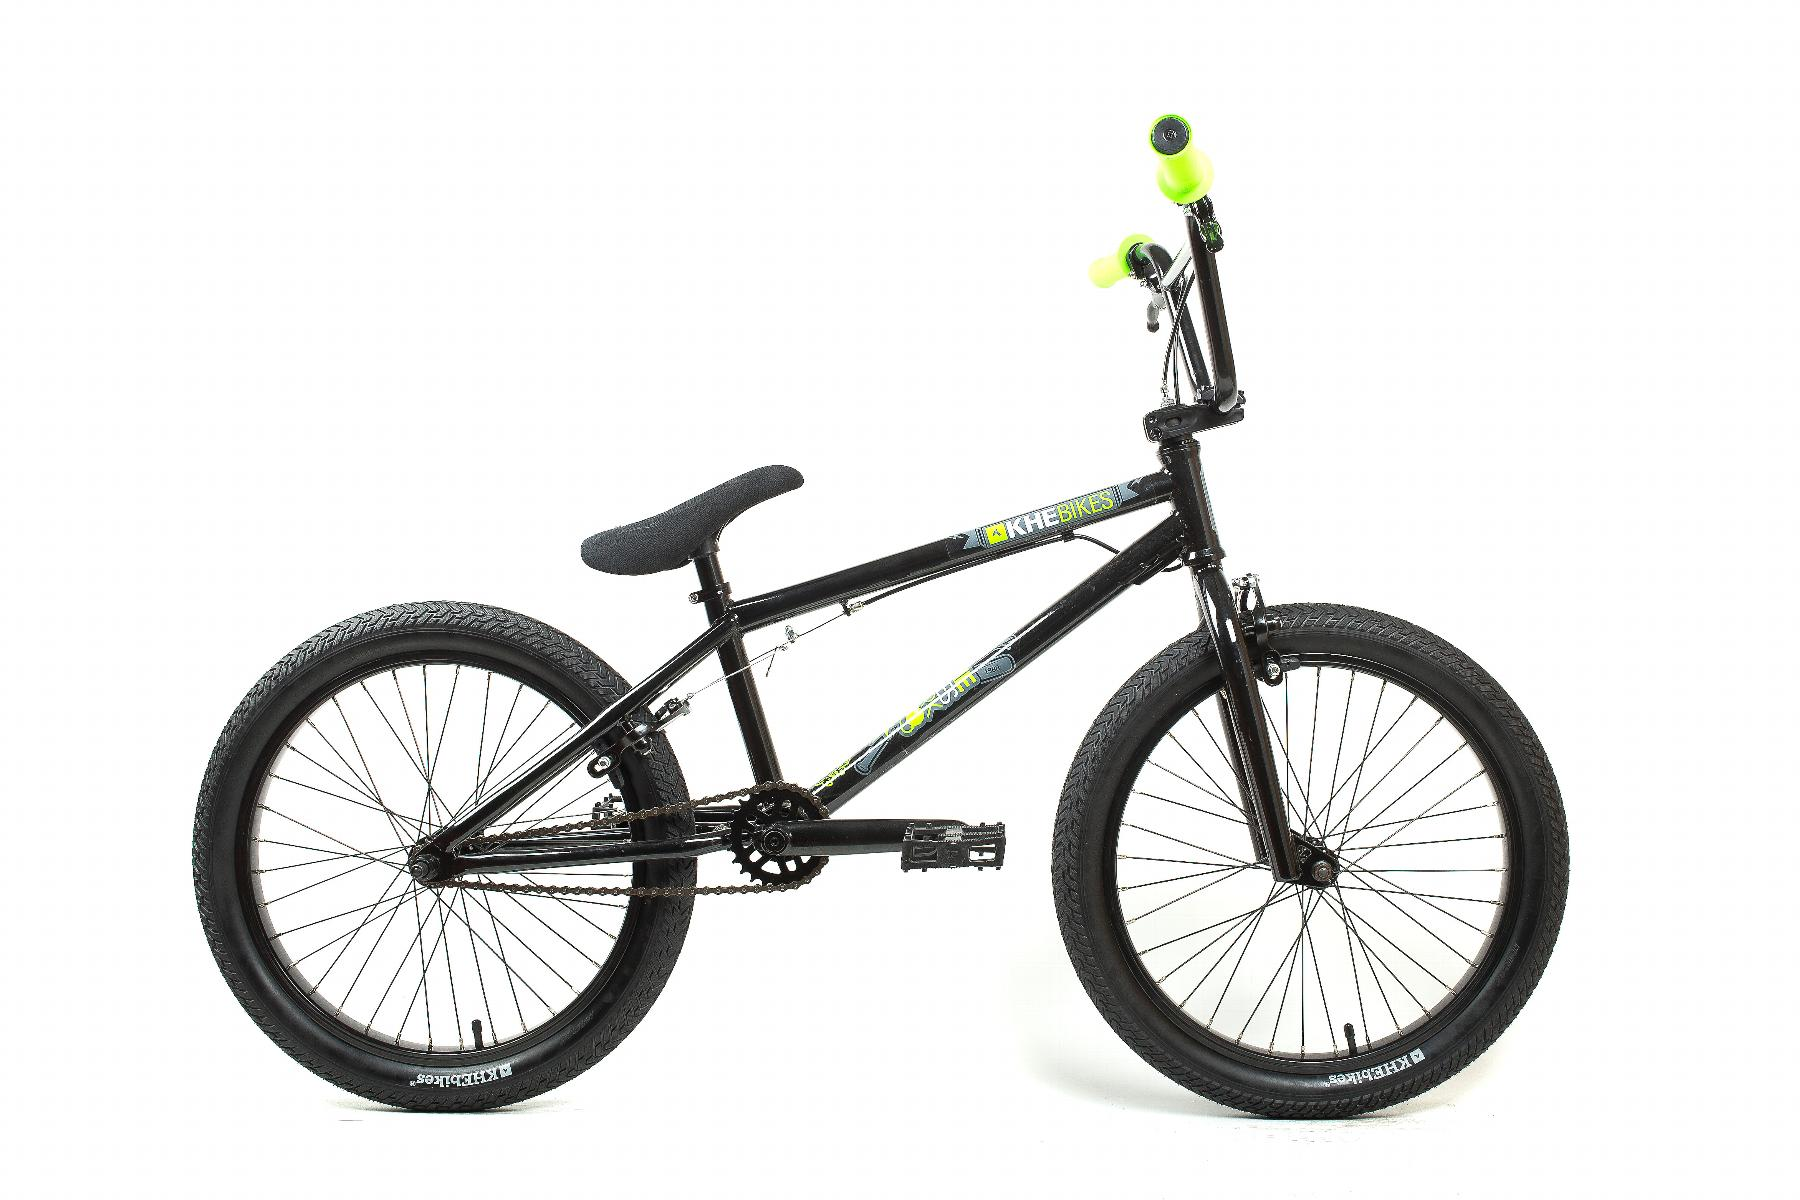 KHE Park Two BMX Bicycle by Cycle Force Group